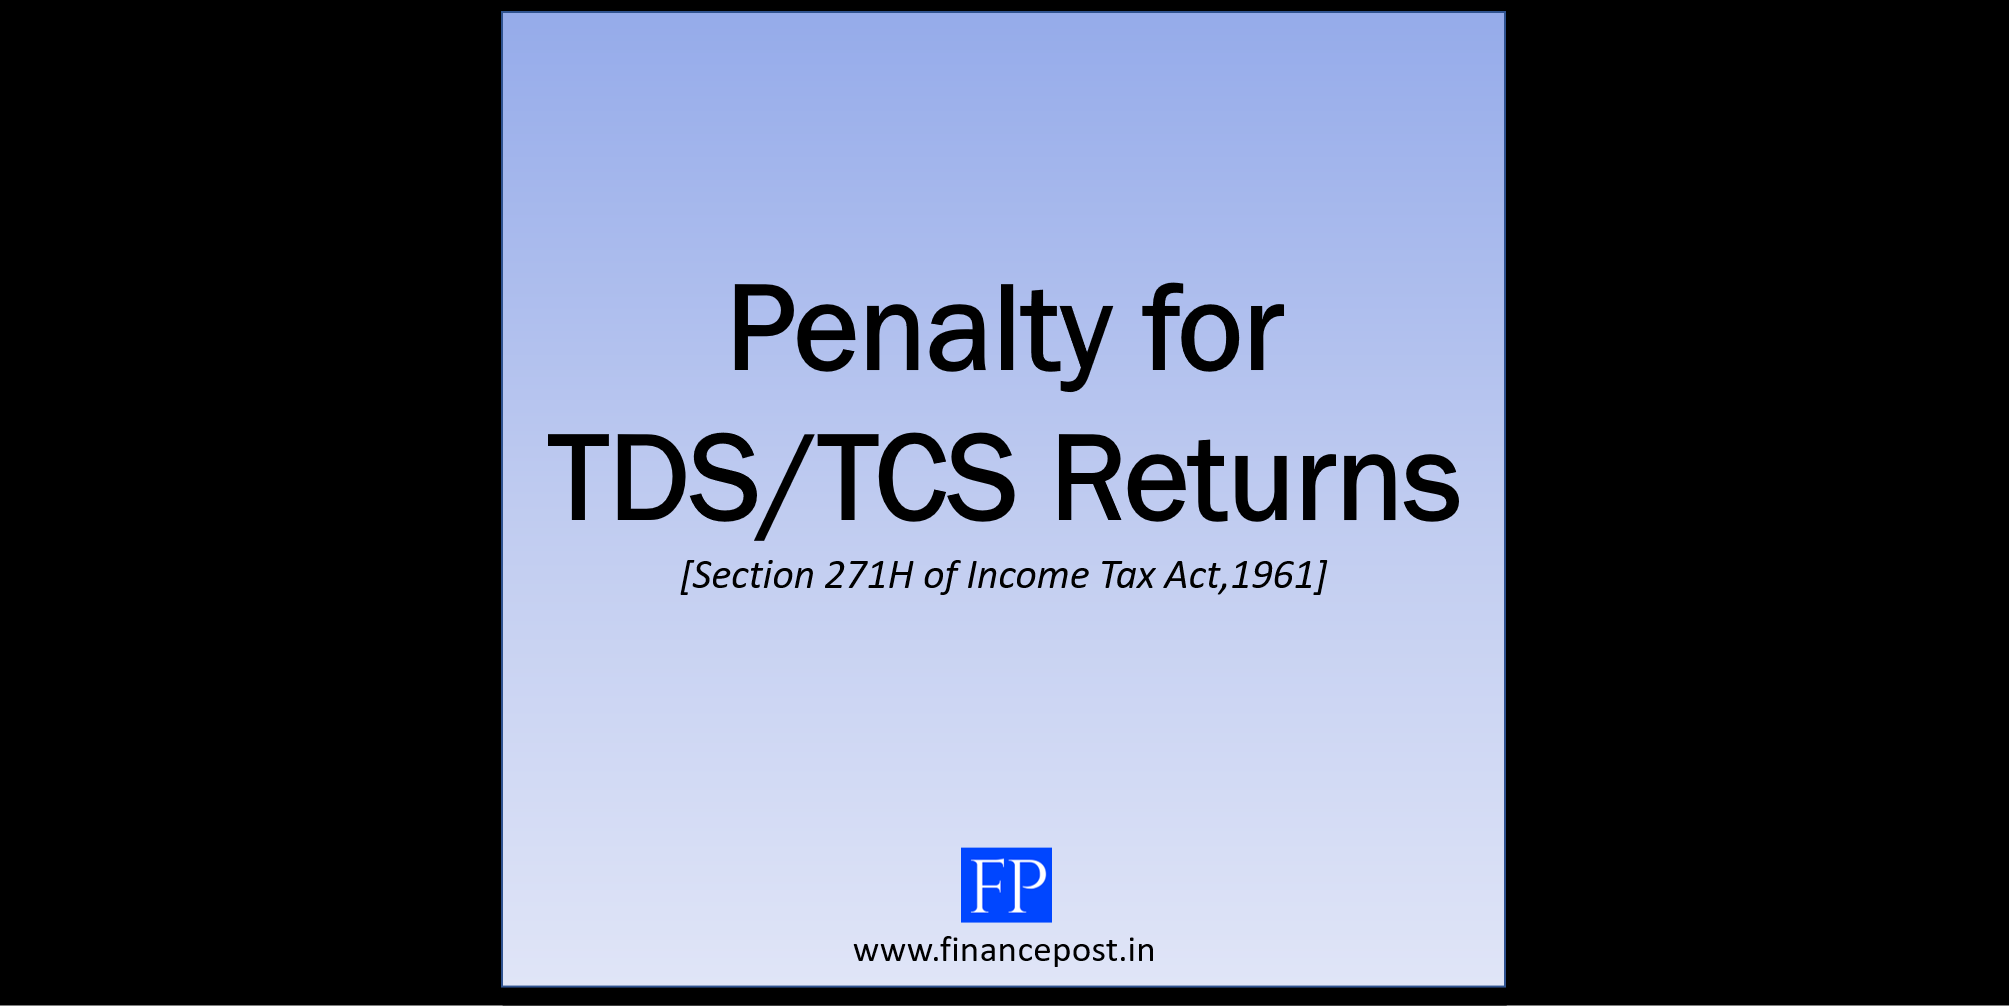 Penalty for TDS/TCS Returns